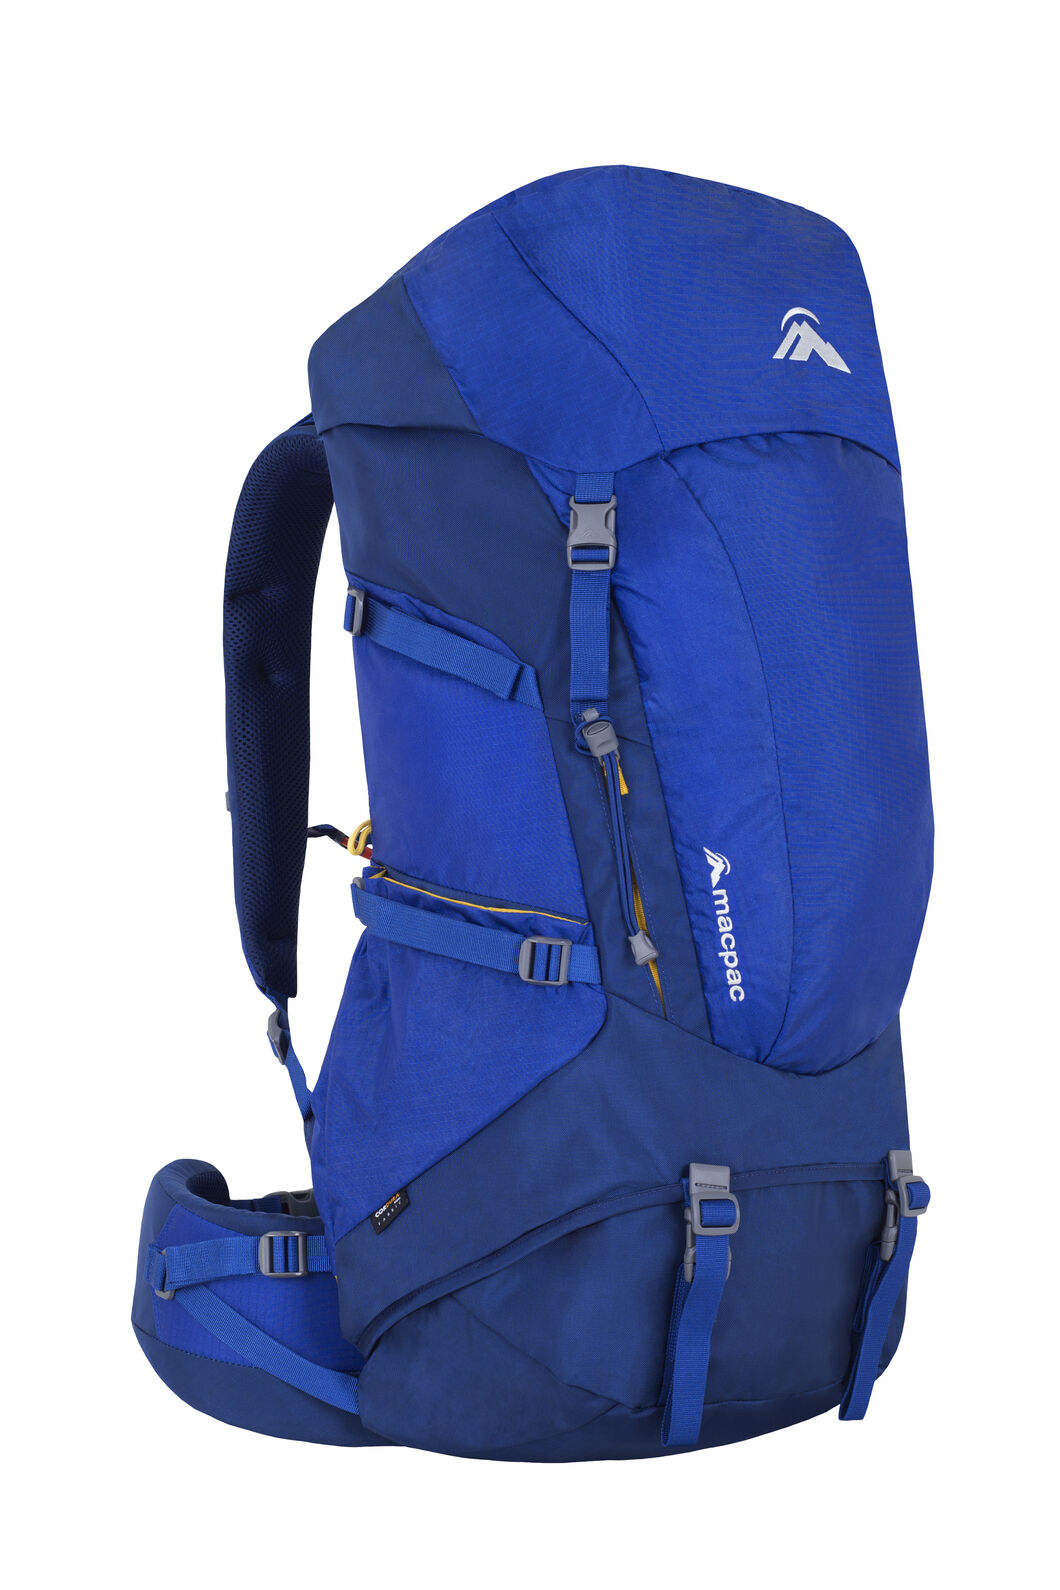 Macpac Torlesse 50L Hiking Pack, Surf The Web, hi-res